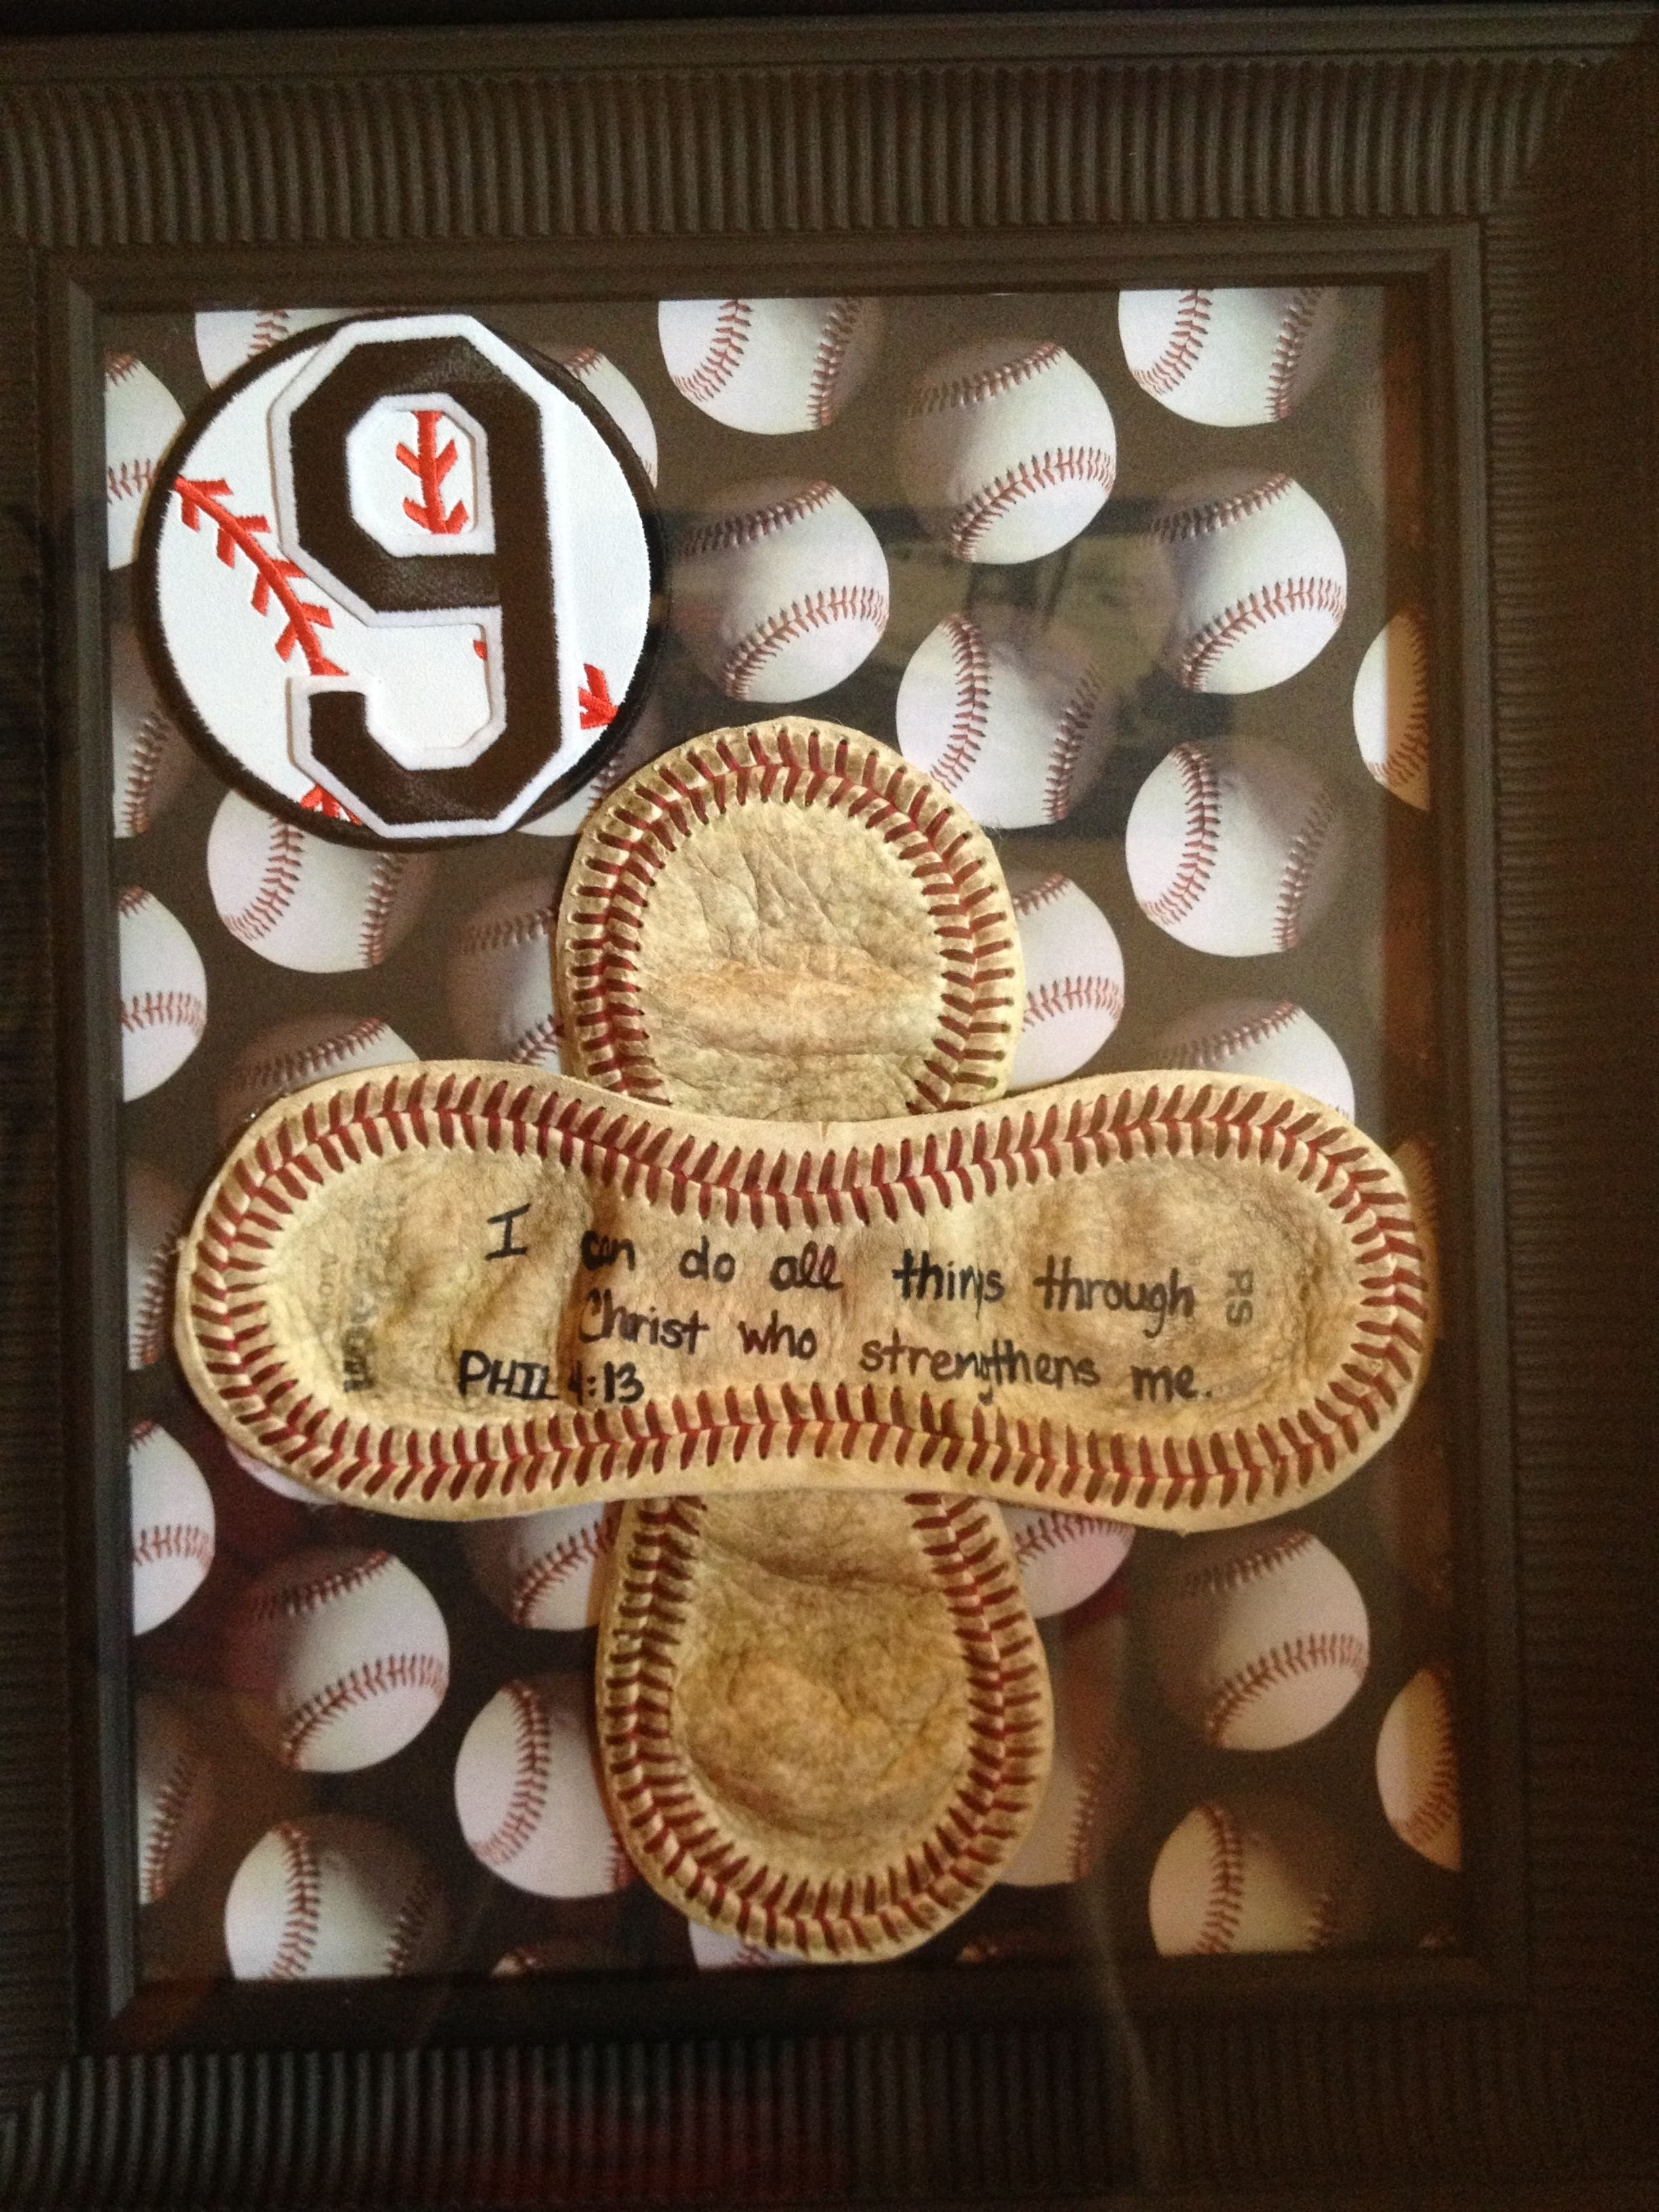 10 fabulous cute cheap gift ideas for boyfriend do with a softball and jersey in the